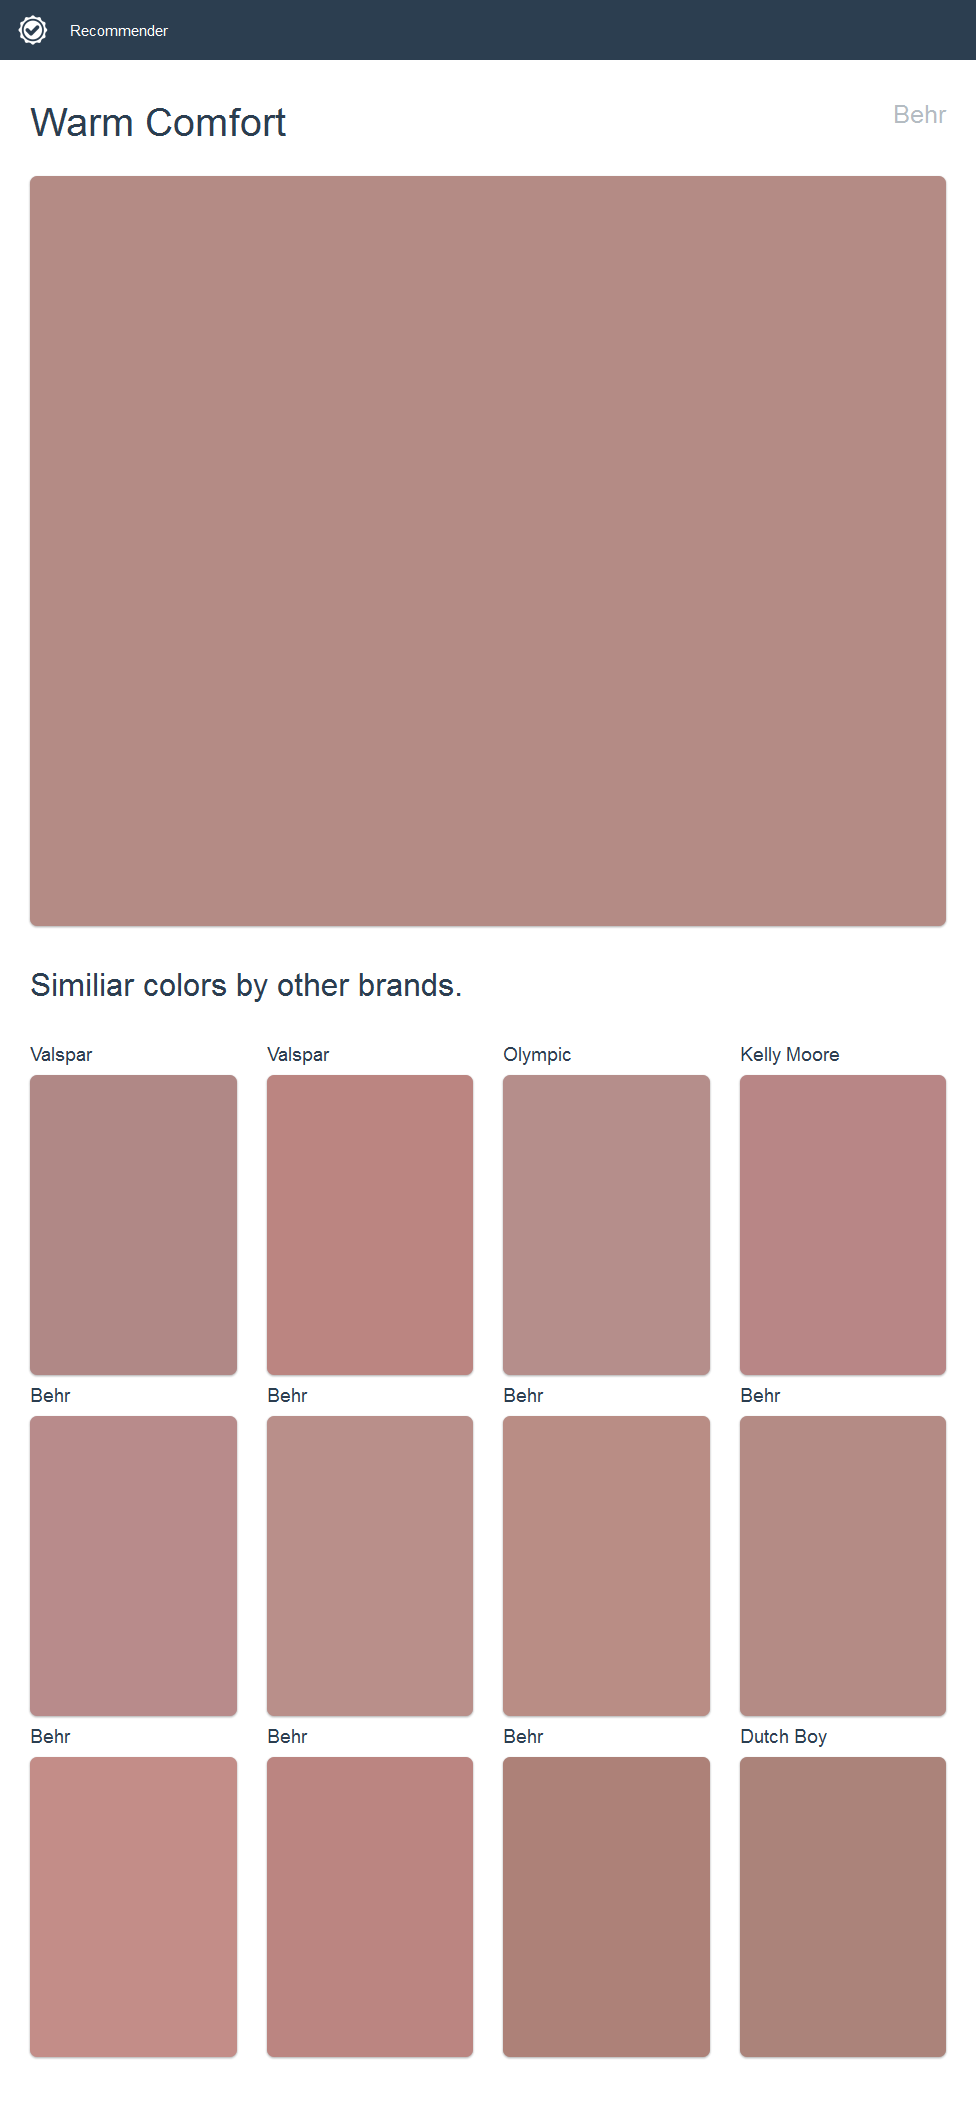 Warm Comfort, Behr. Click the image to see similiar colors by other brands.